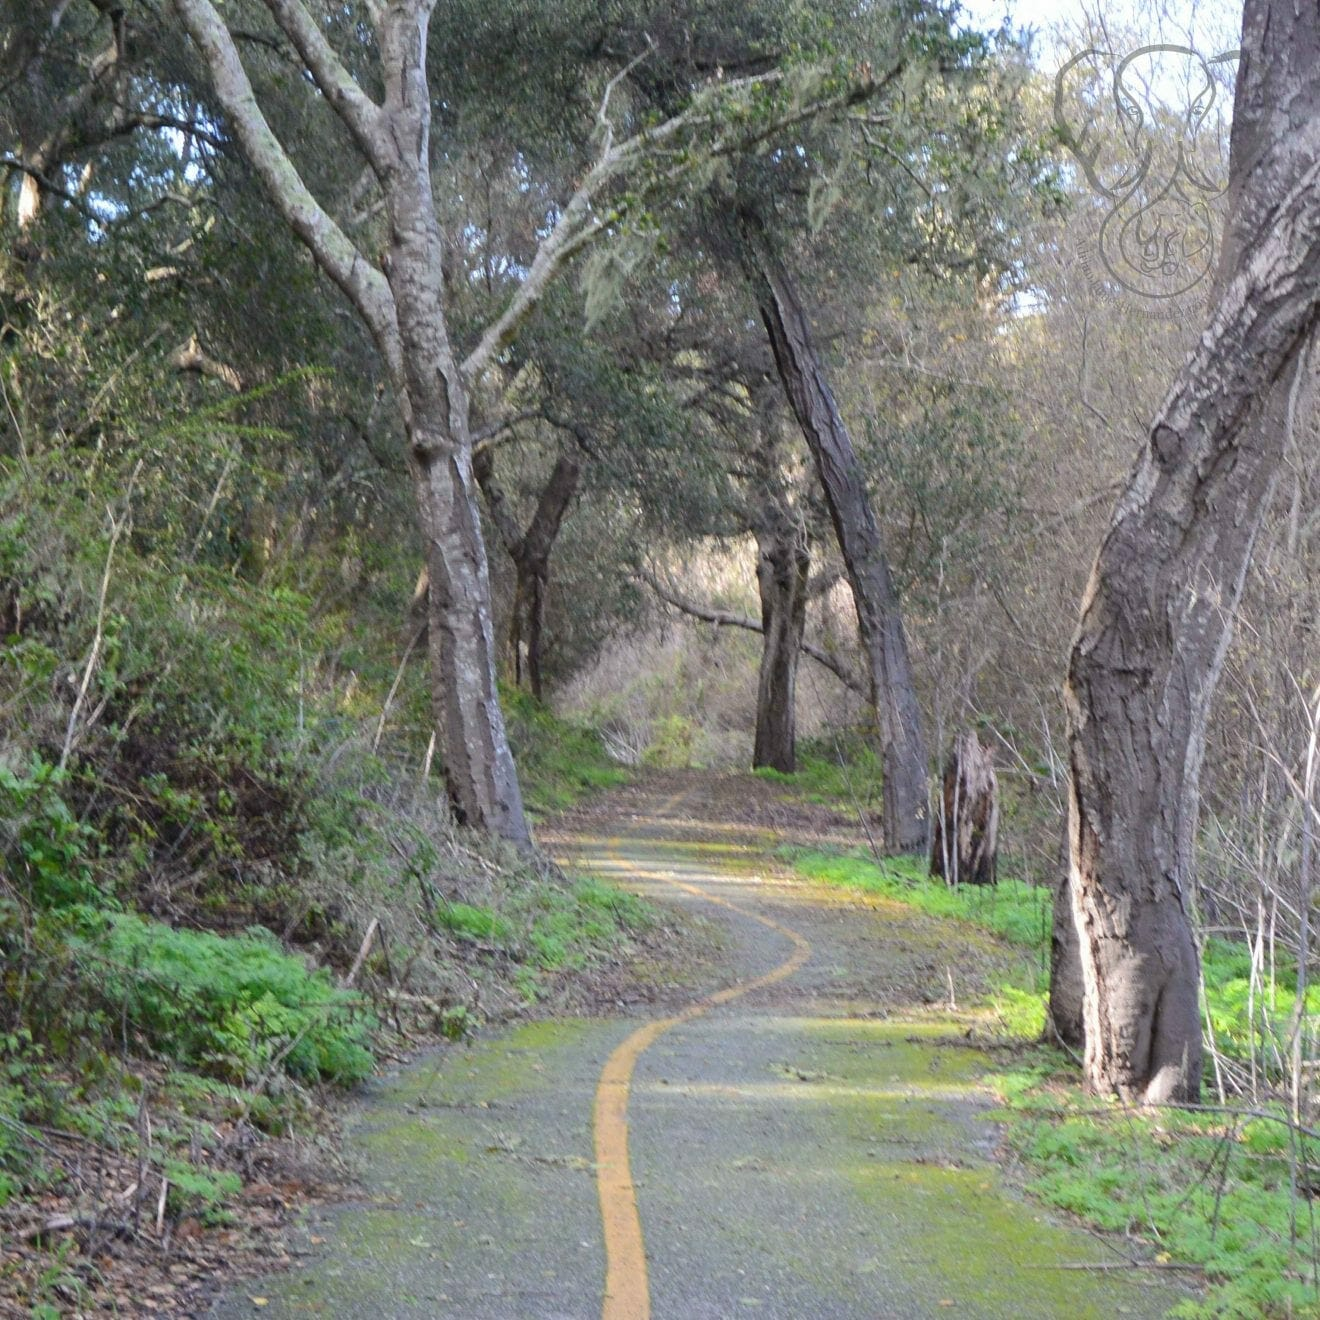 Bike path in California (Miranda Hernandez)